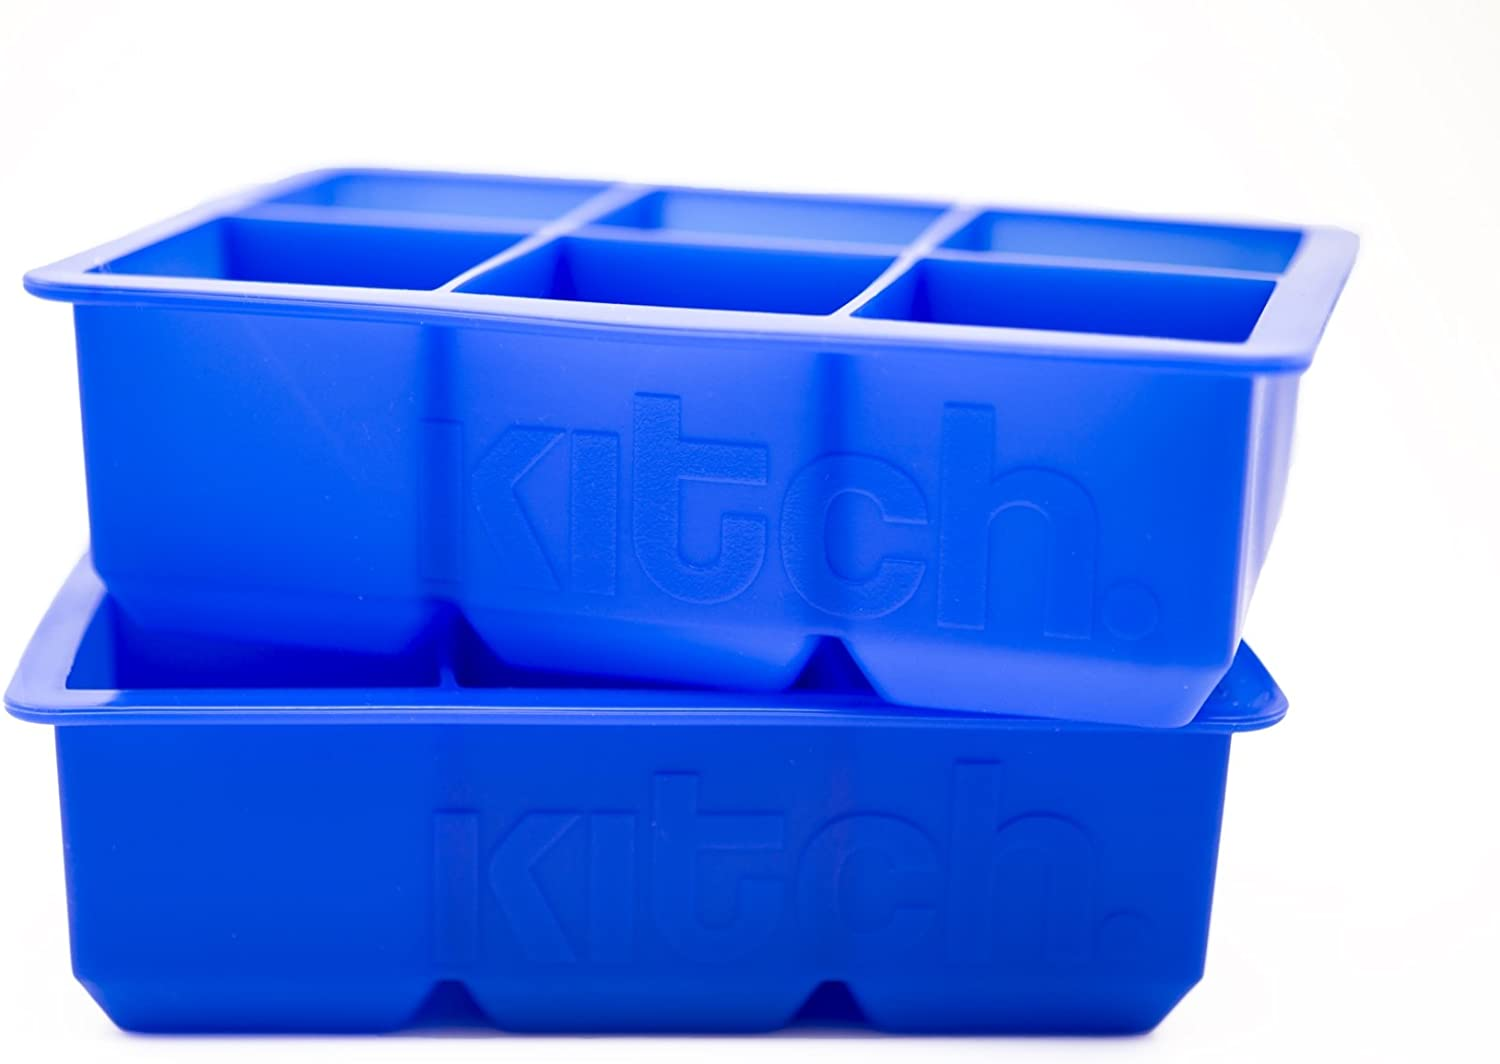 Large Cube Silicone Ice Tray, 2 Pack by Kitch, Giant 2 Inch Ice Cubes Keep Your Drink Cooled for Hours - Cobalt Blue: Kitchen & Dining